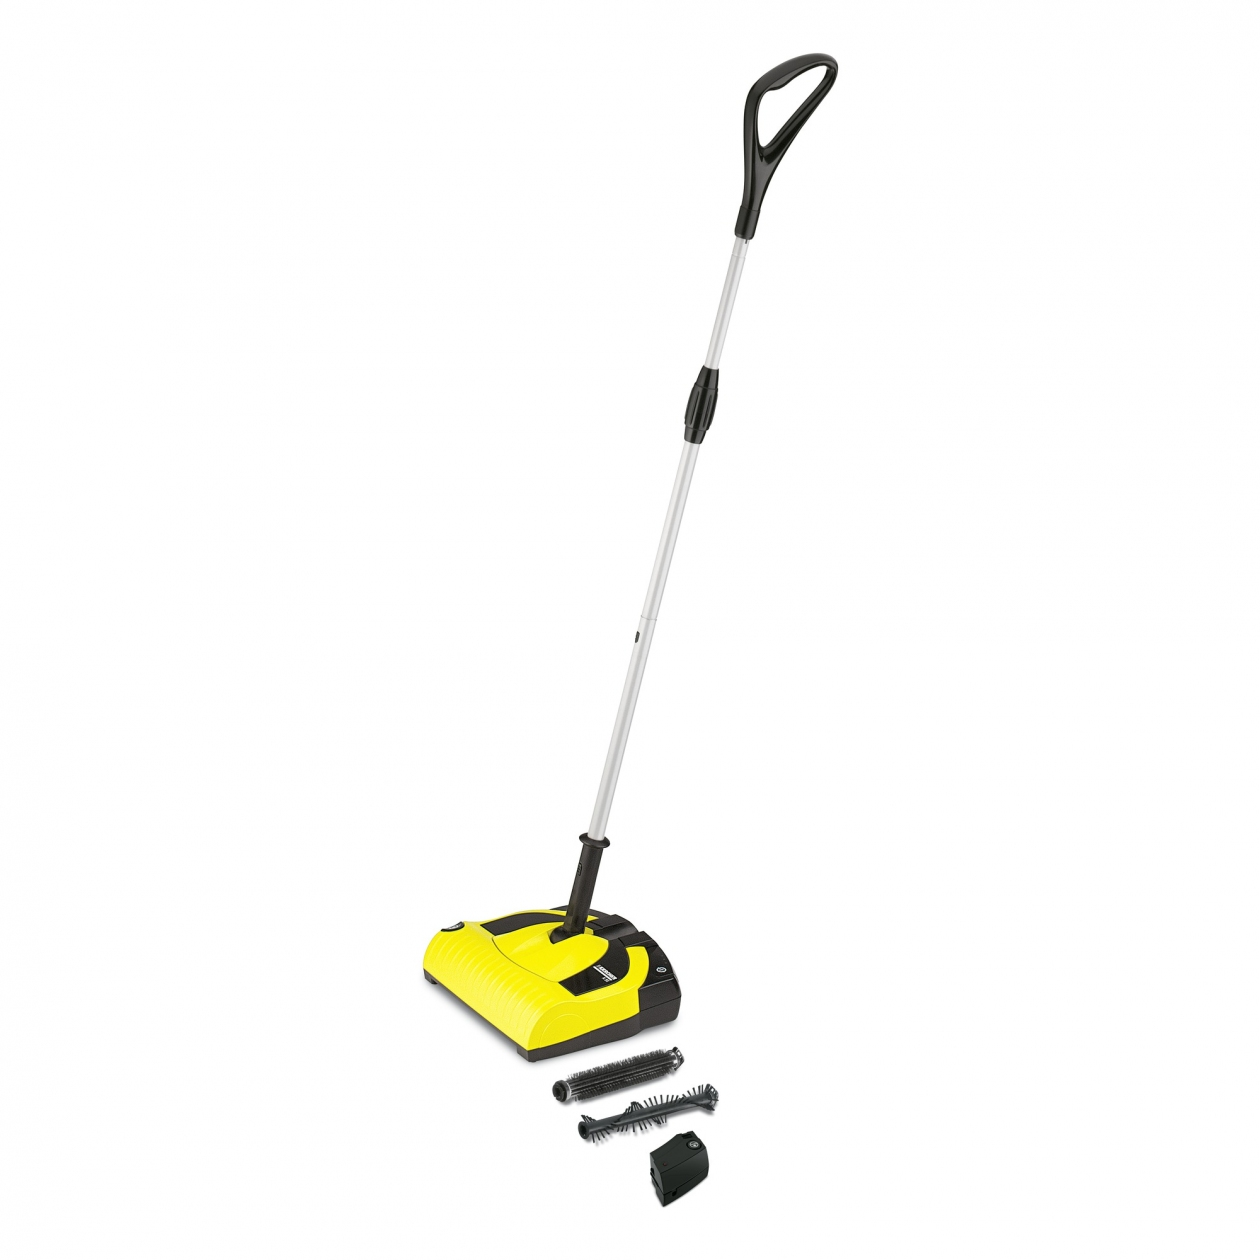 Scopa a batteria karcher k 55 pet plus toolshop italia for Scopa a batteria